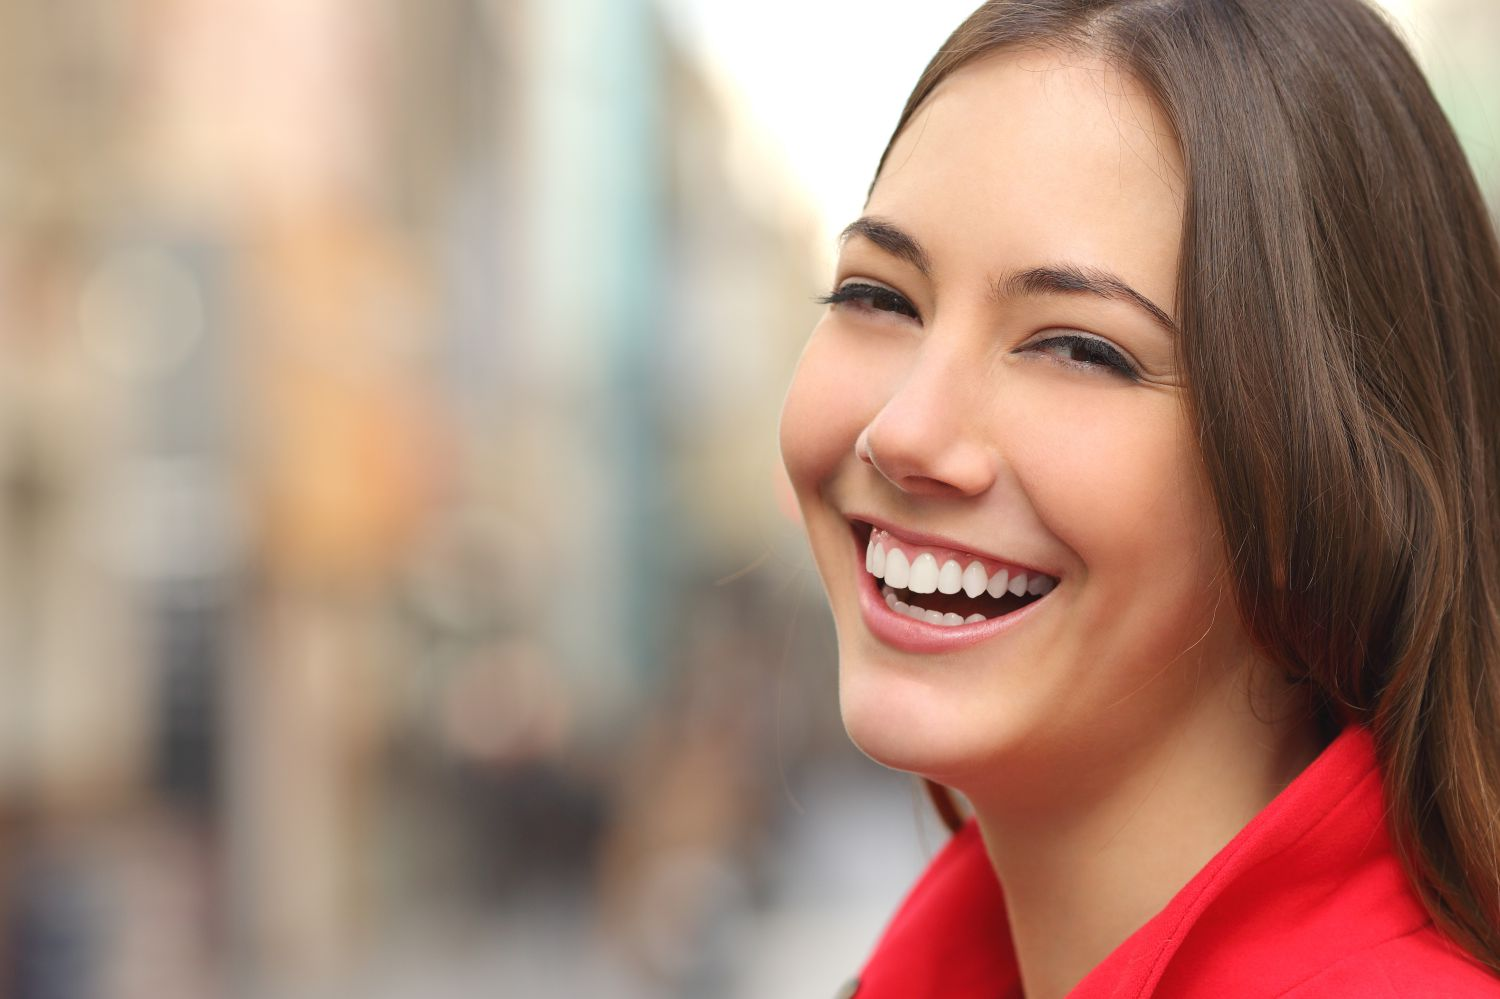 The art of creating the perfect smile